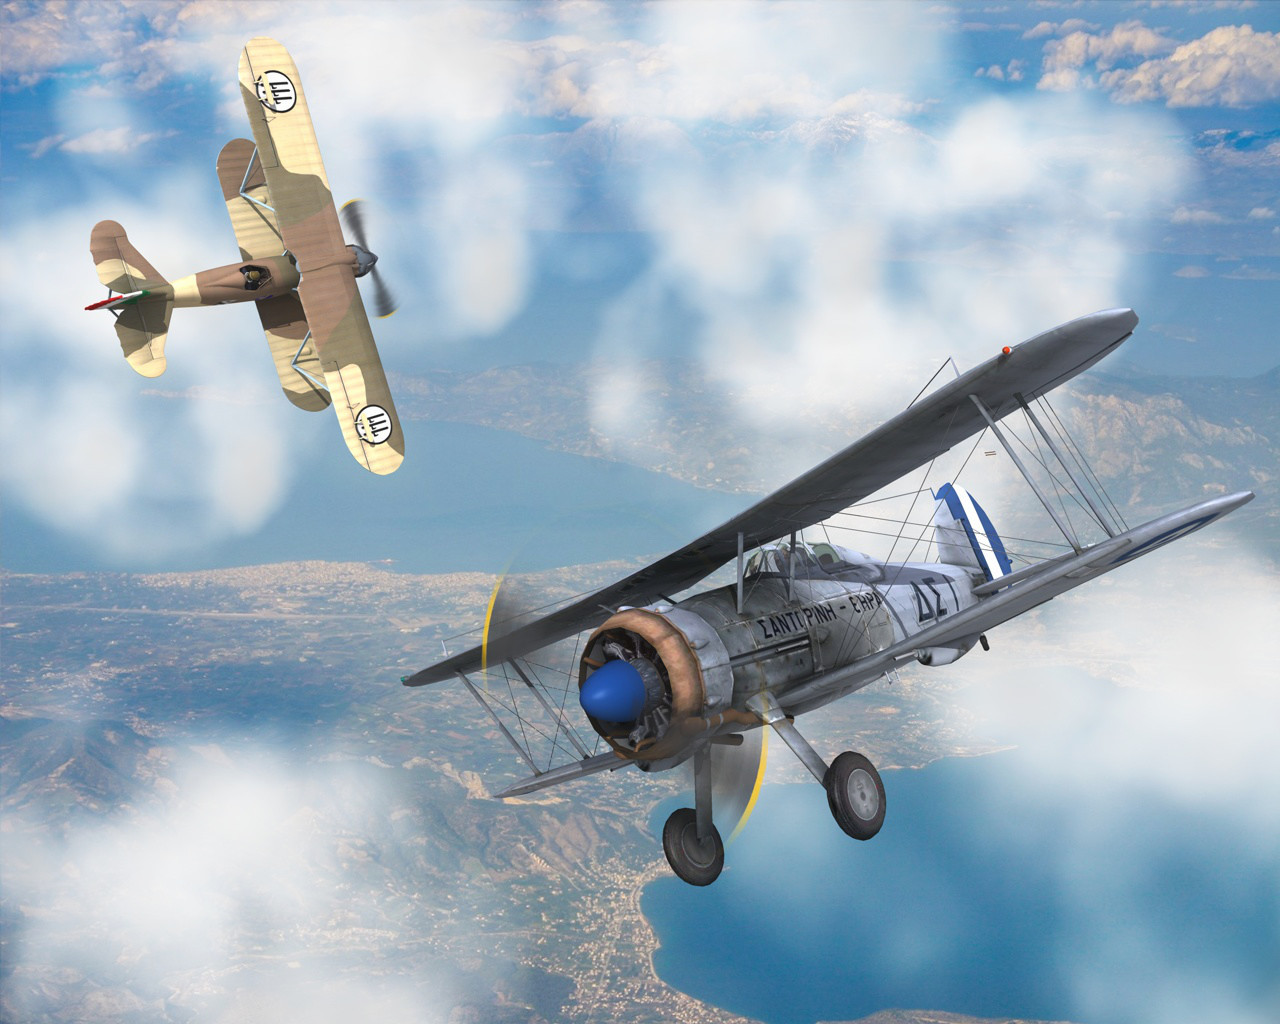 The Last Battle Of The Biplanes